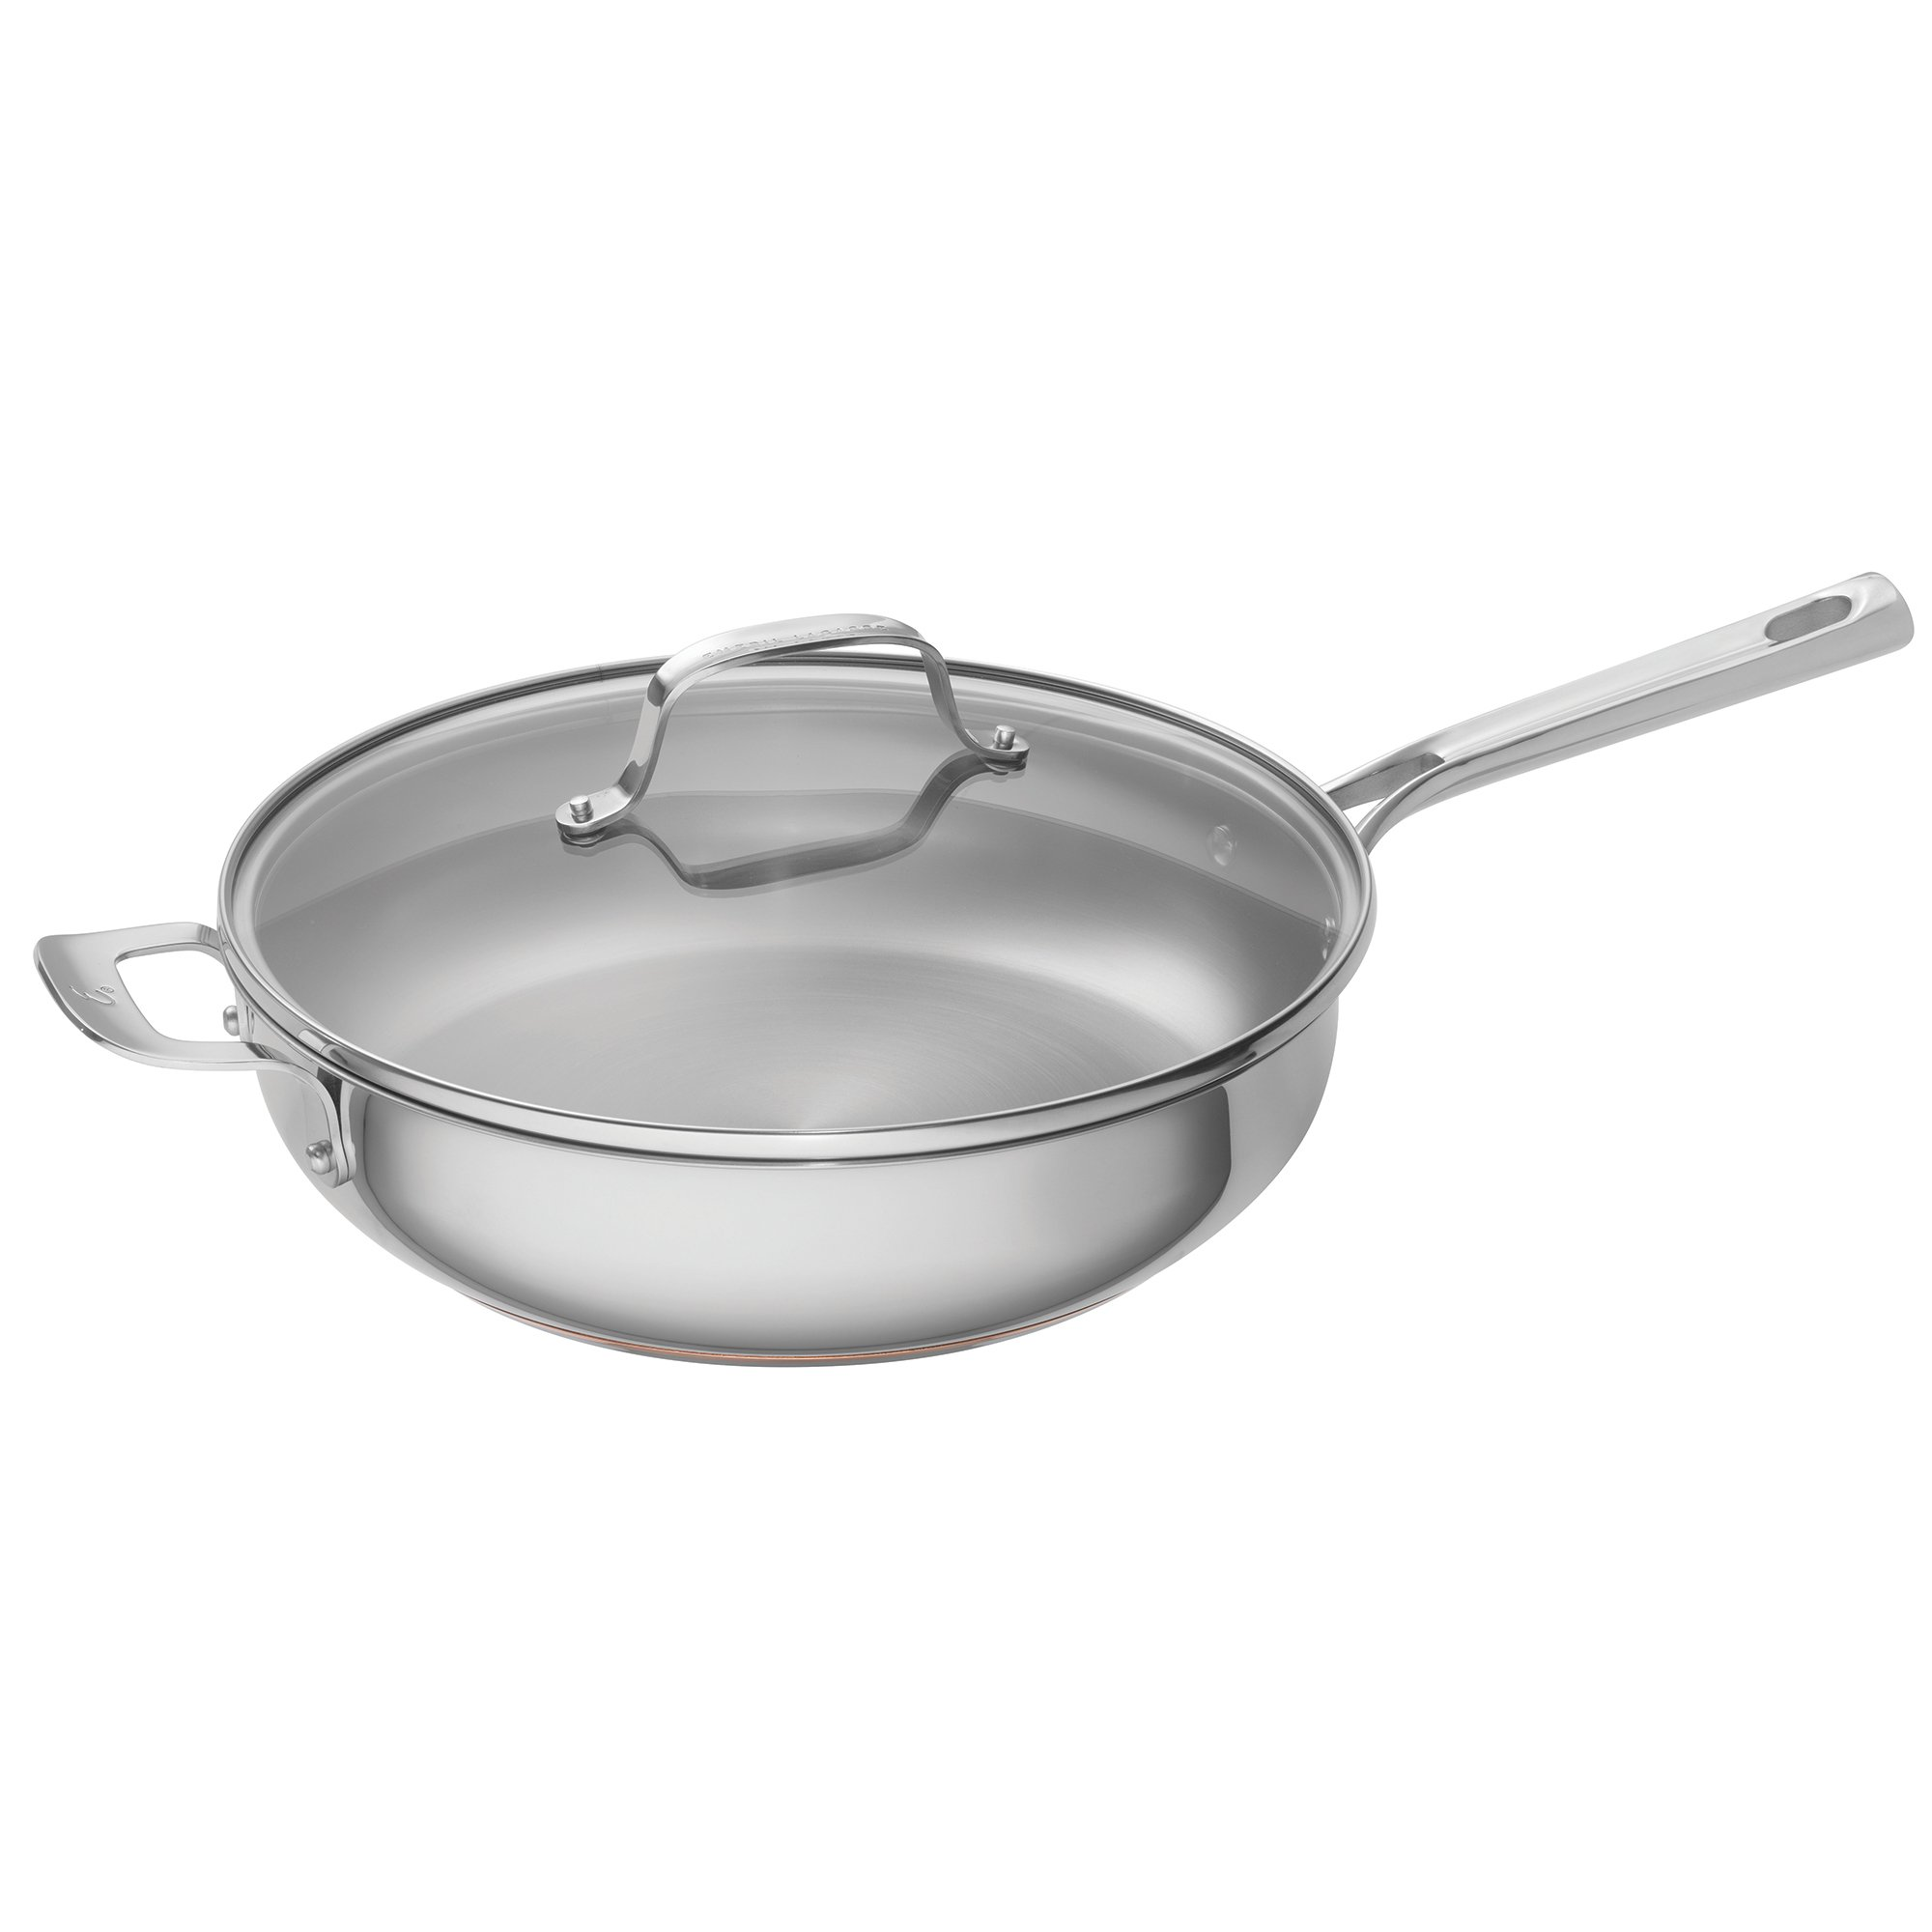 Emeril Lagasse Stainless Steel Copper Core Covered Deep Saute Pan, 5 quart, Silver